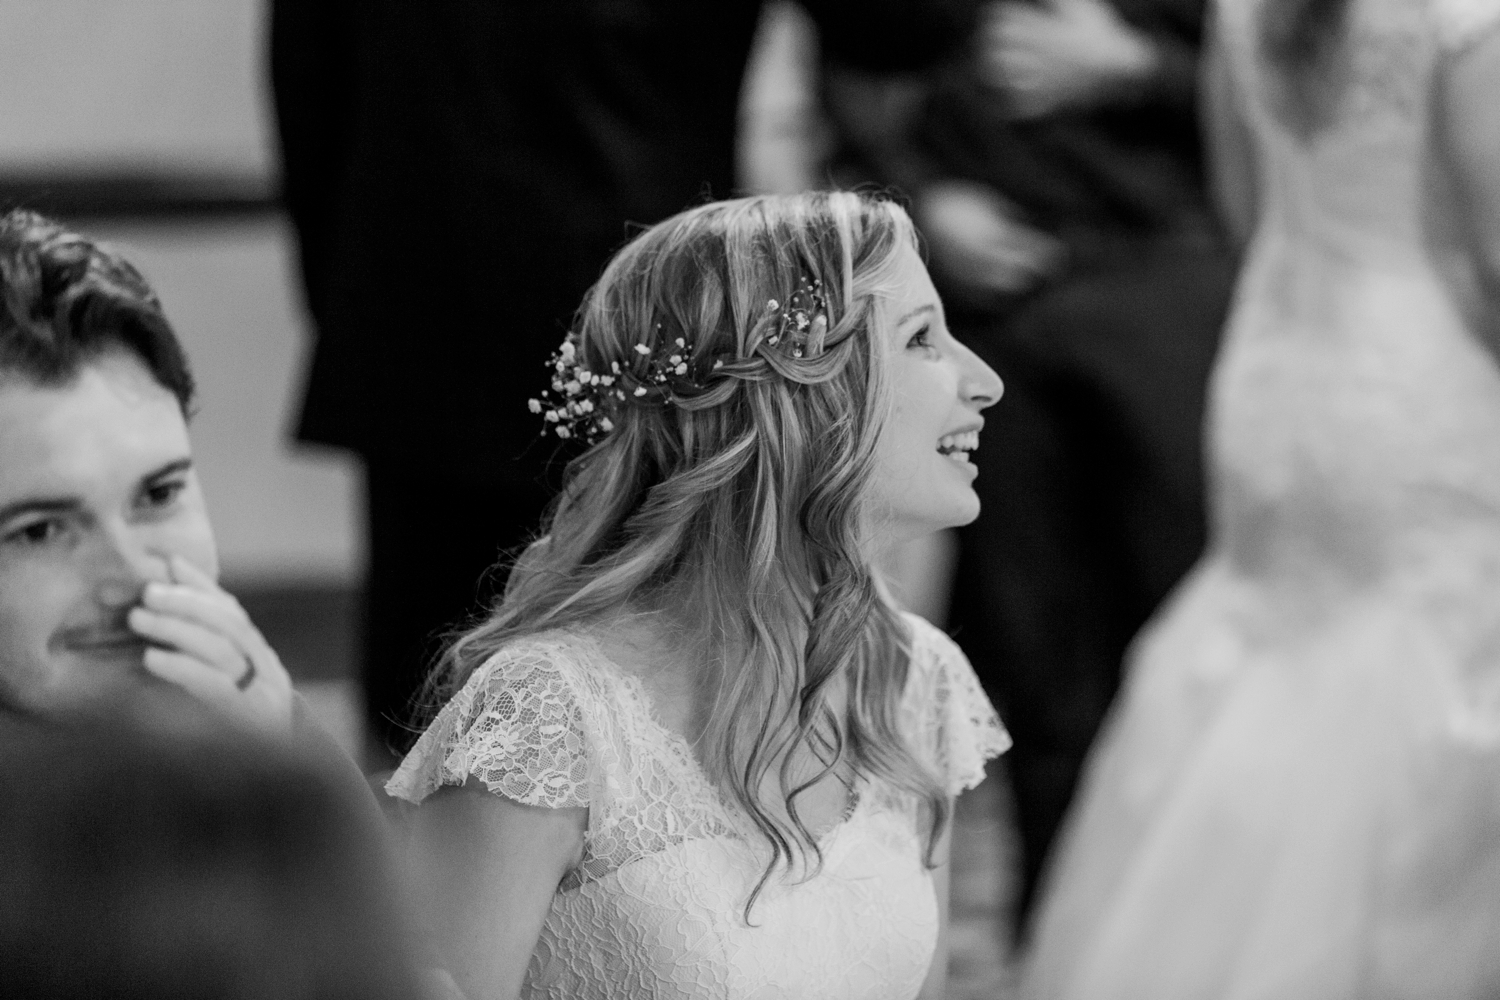 Community_Life_Center_Indianapolis_Indiana_Wedding_Photographer_Chloe_Luka_Photography_6978.jpg